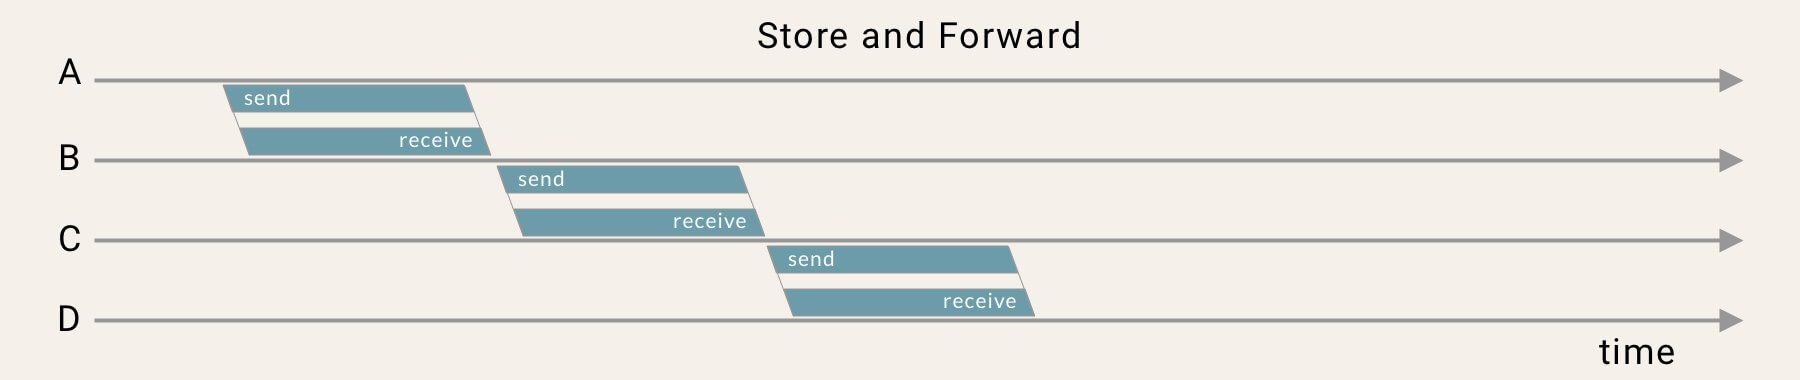 Store and Forward sketch